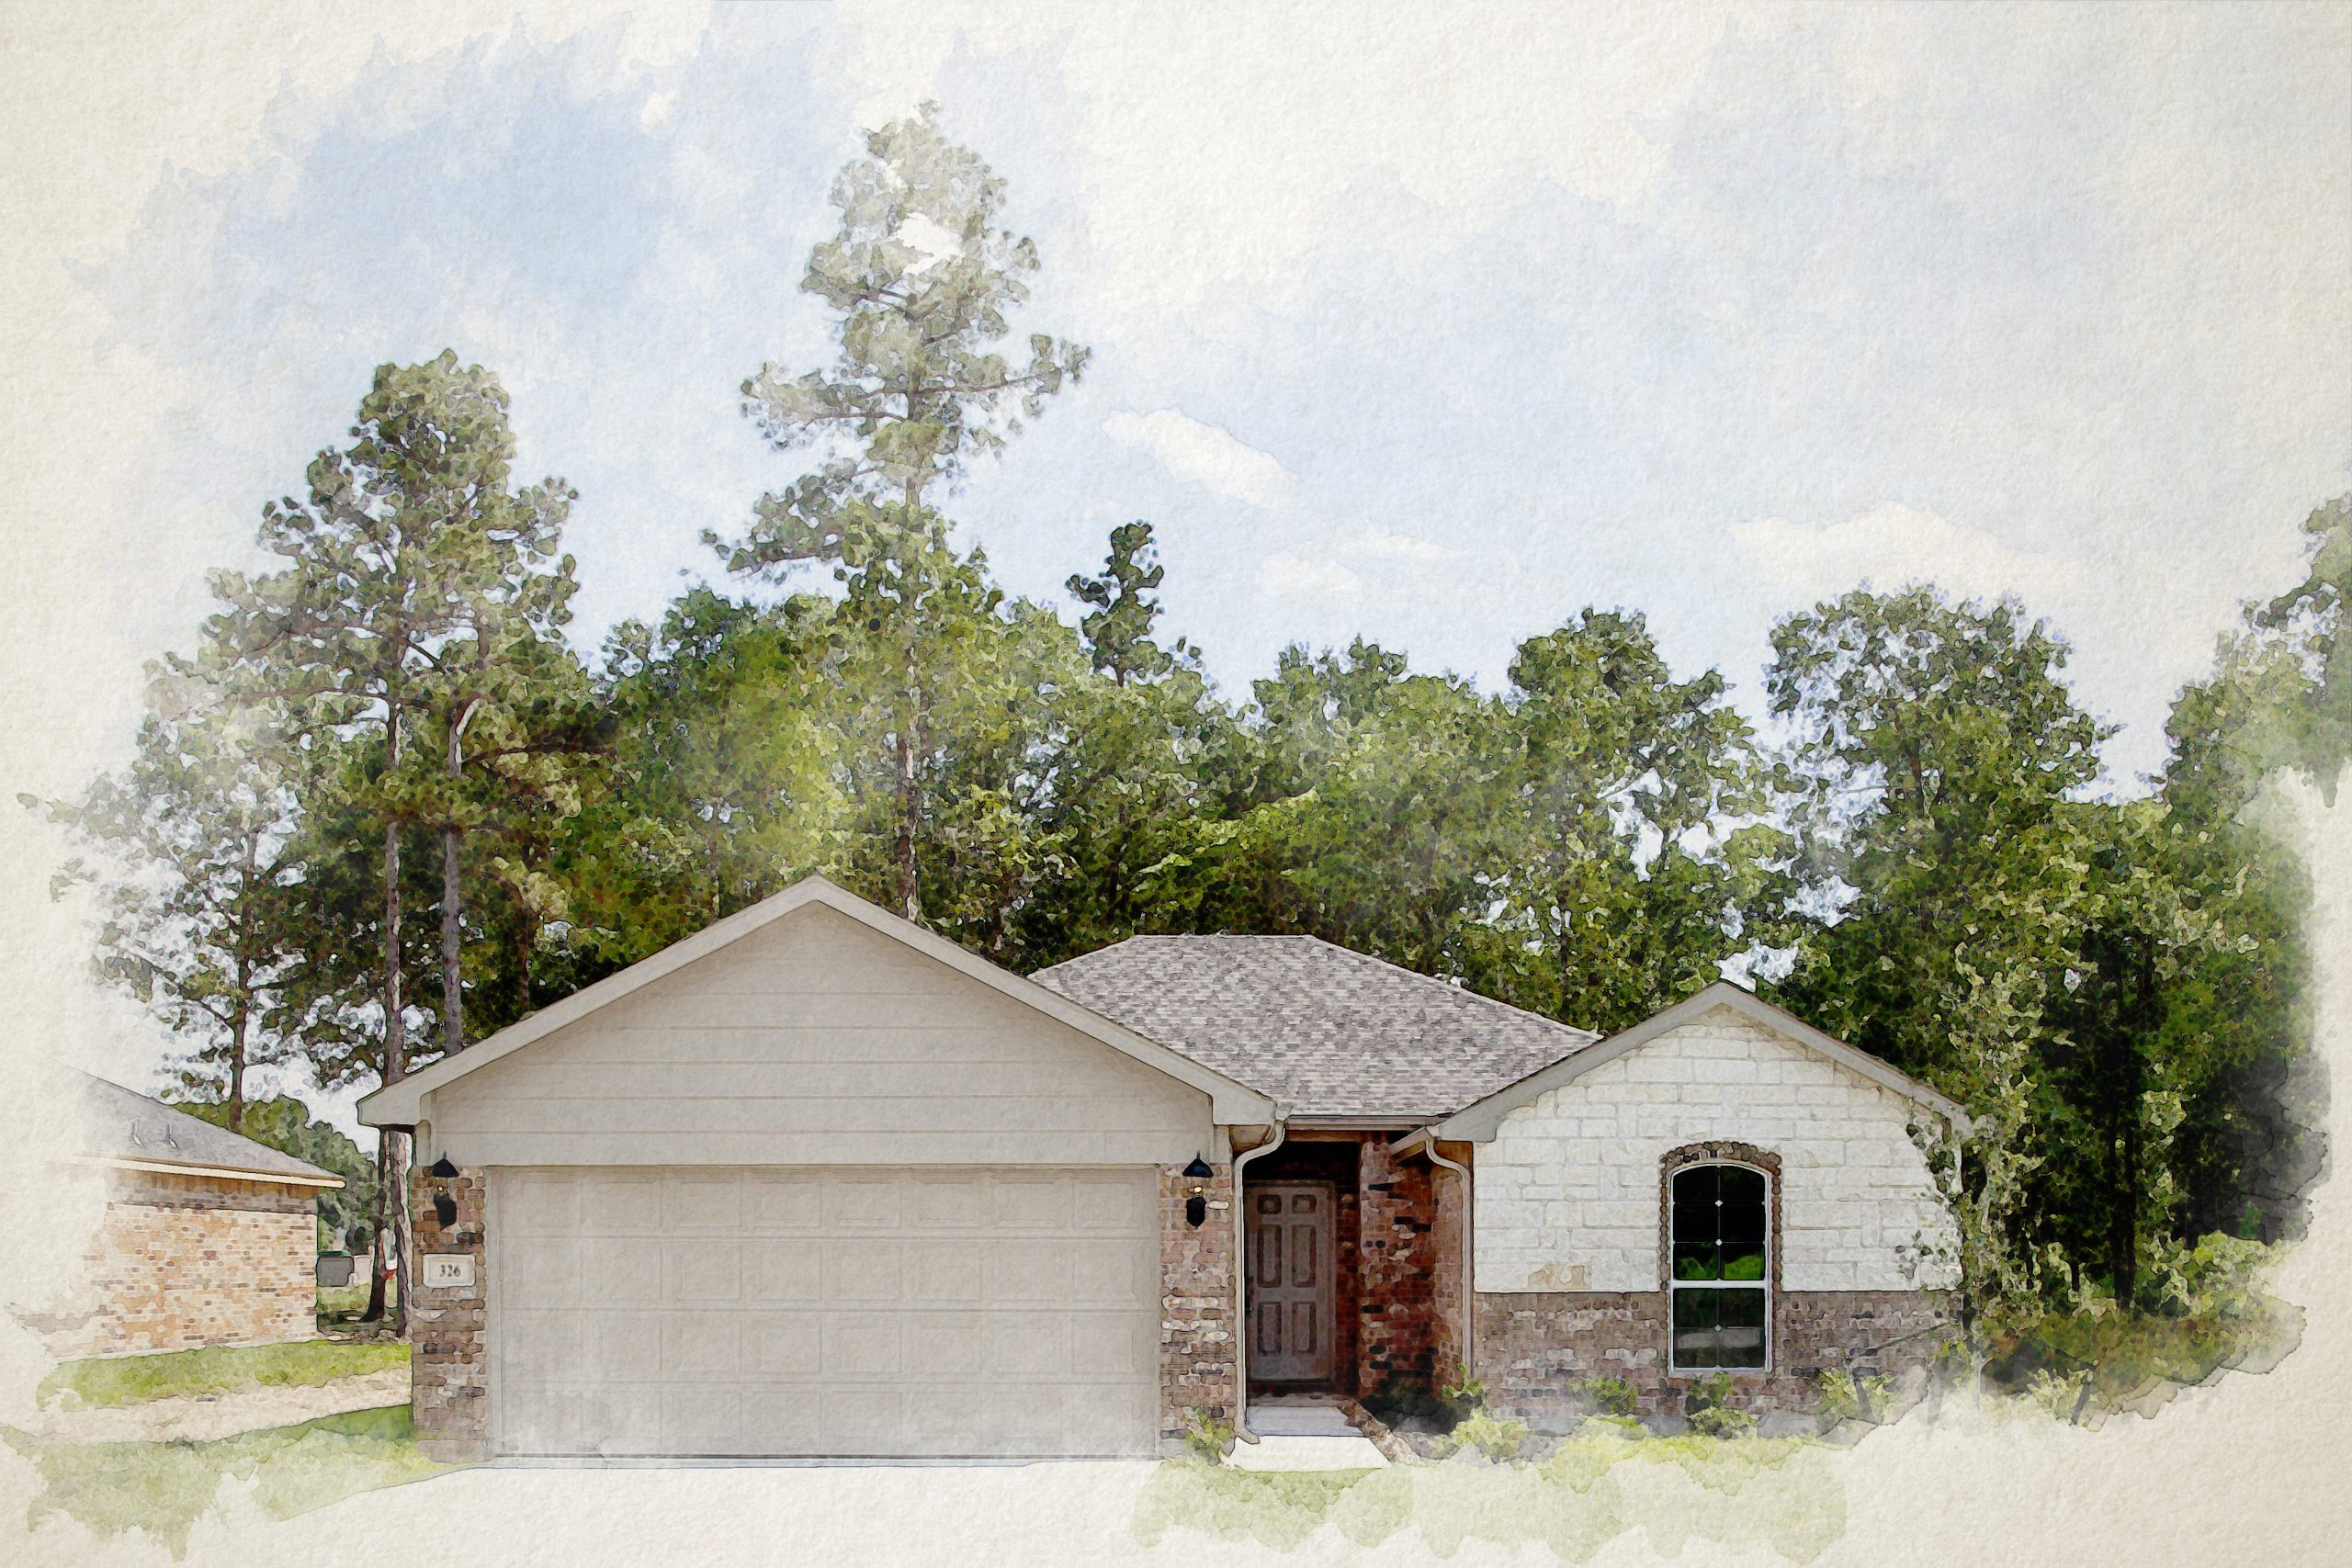 144 Willowbend Loop | New Home in Mabank, Texas